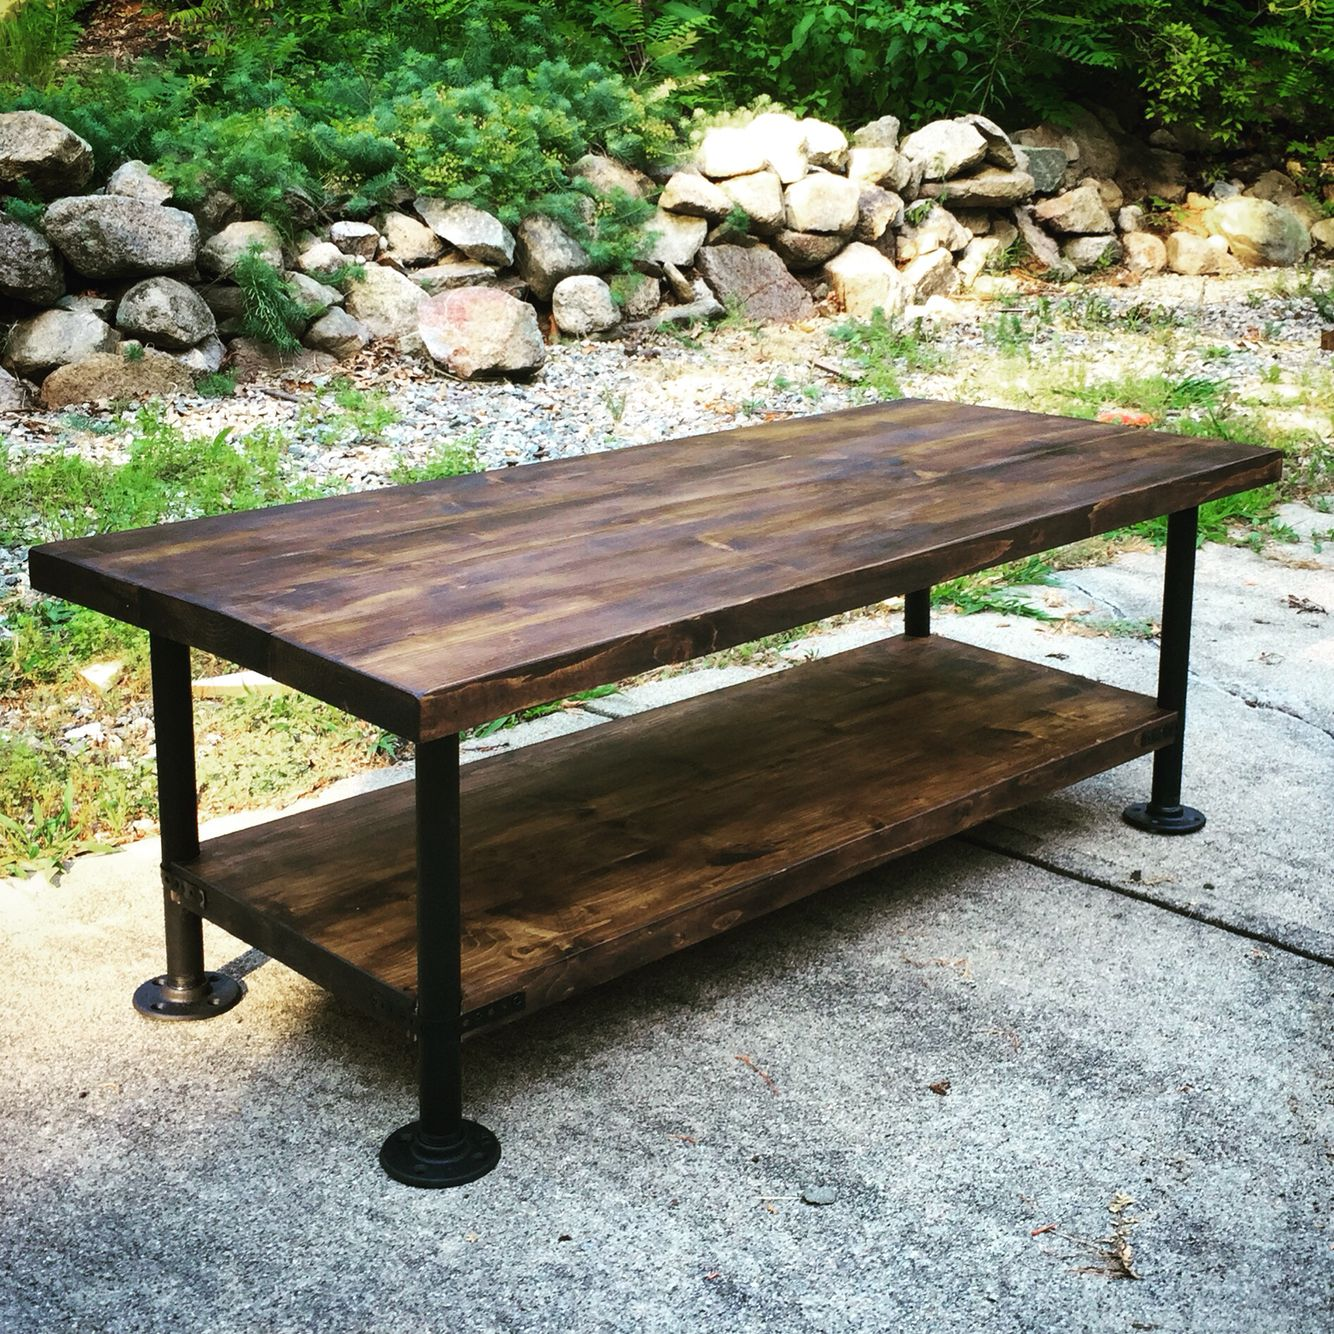 Build Industrial Coffee Table: Industrial Style Wood Coffee Table With Steel Pipe Legs